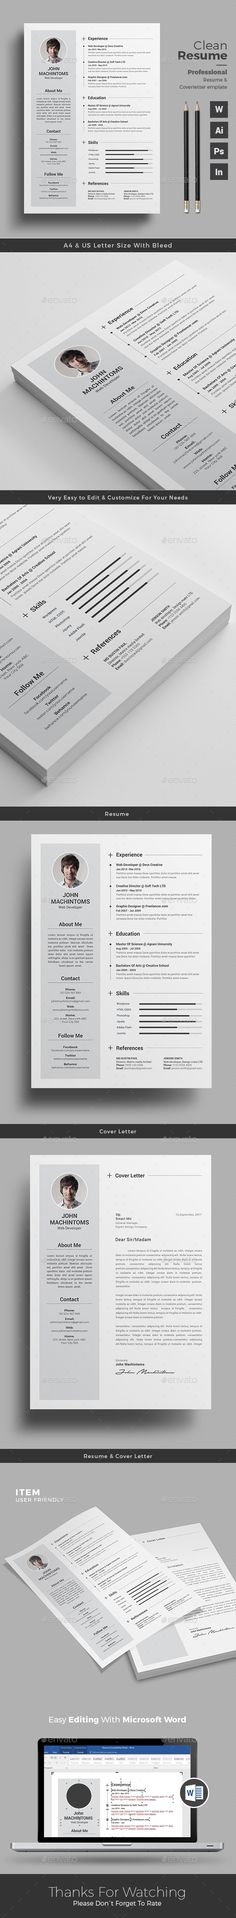 The Resume Template PSD, MS Word Download here   - resume for word